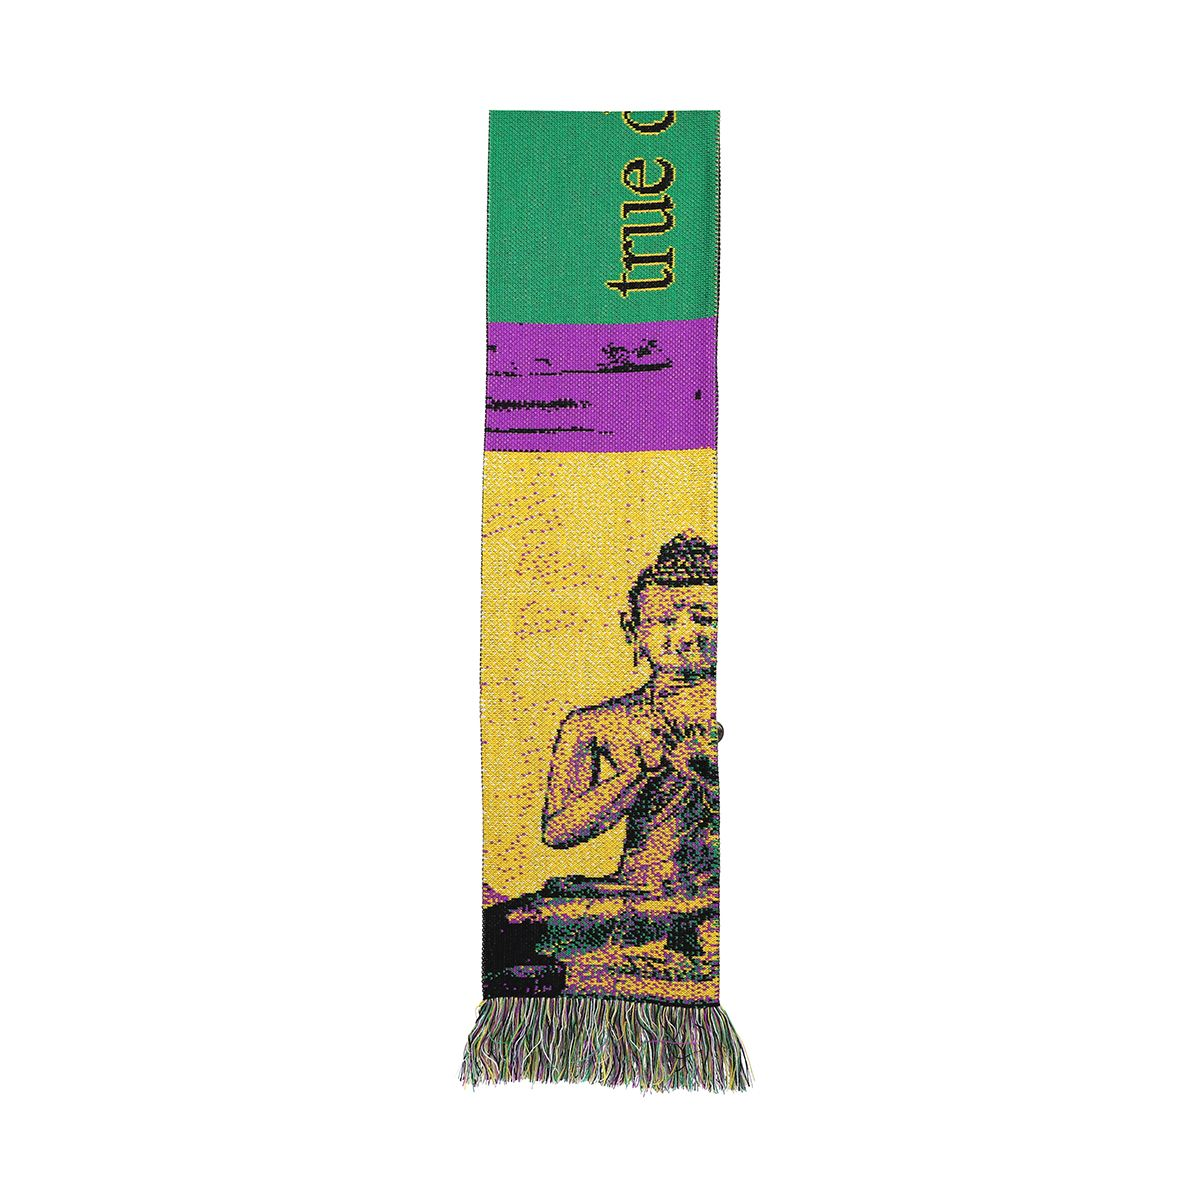 MONTMARTRE NEW YORK SCARF S-42 / N/A